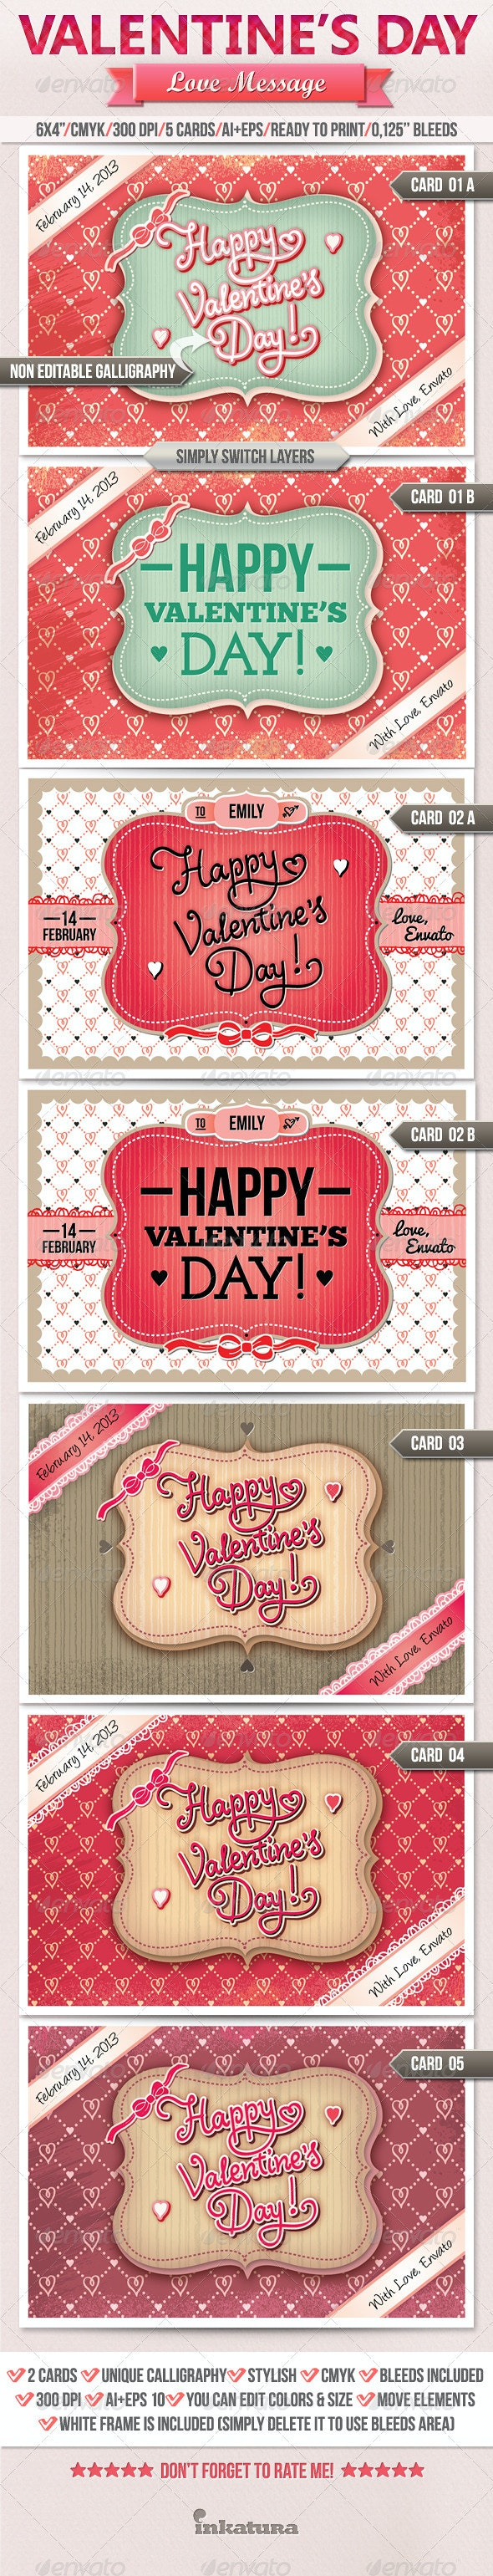 Love Message Valentine's Day Greeting Card - Cards & Invites Print Templates